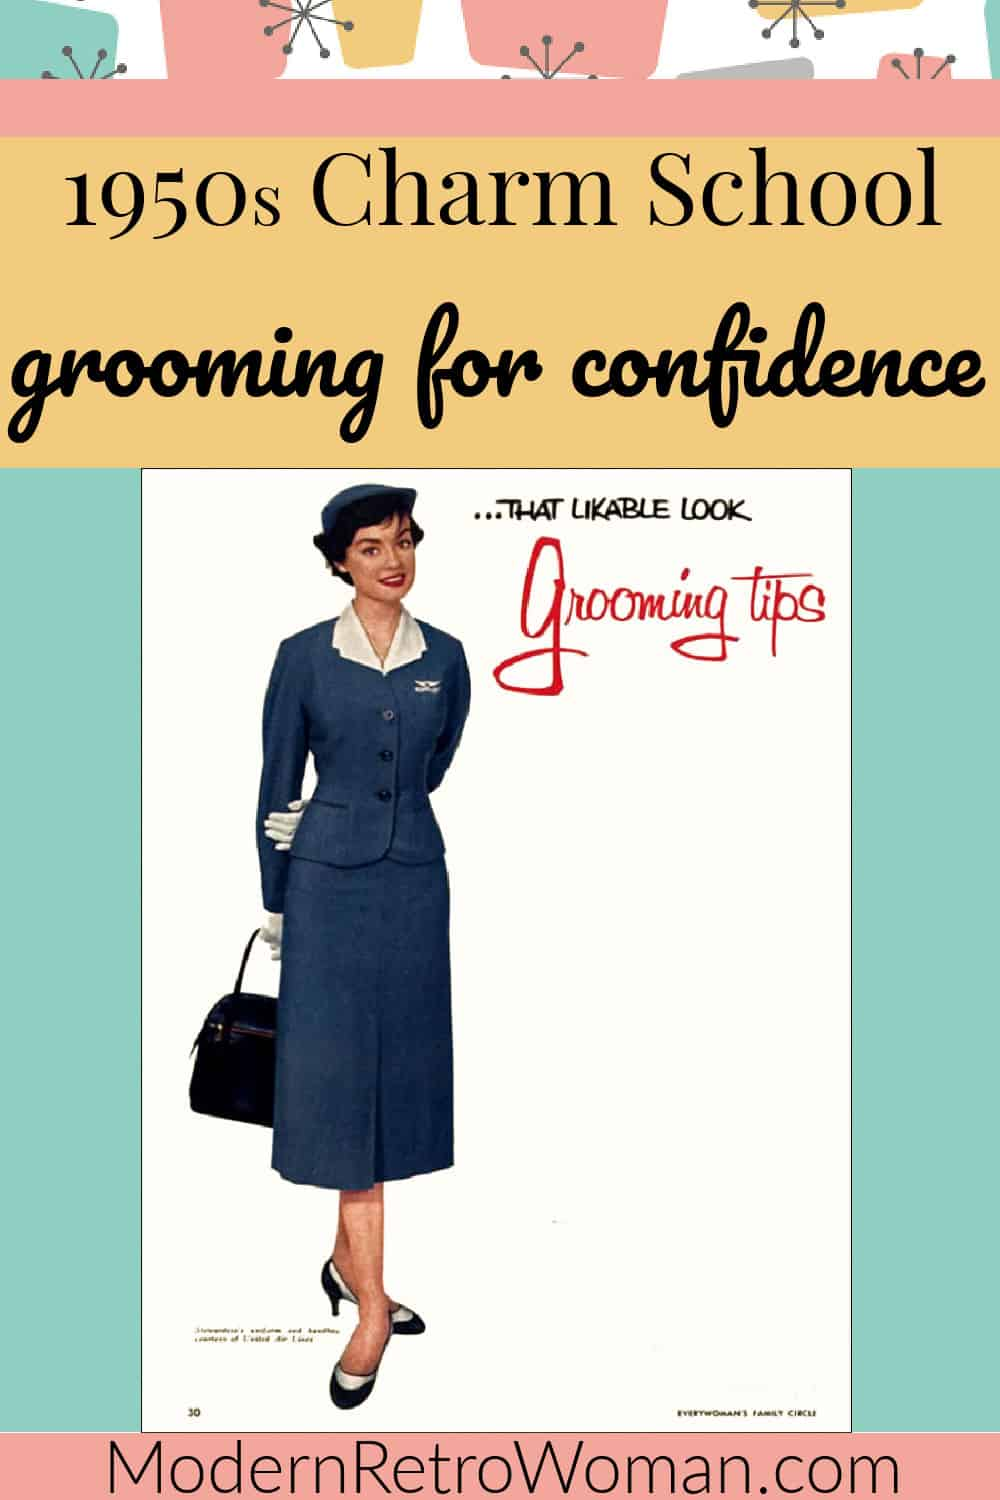 1950s Charm School: Grooming for Confidence